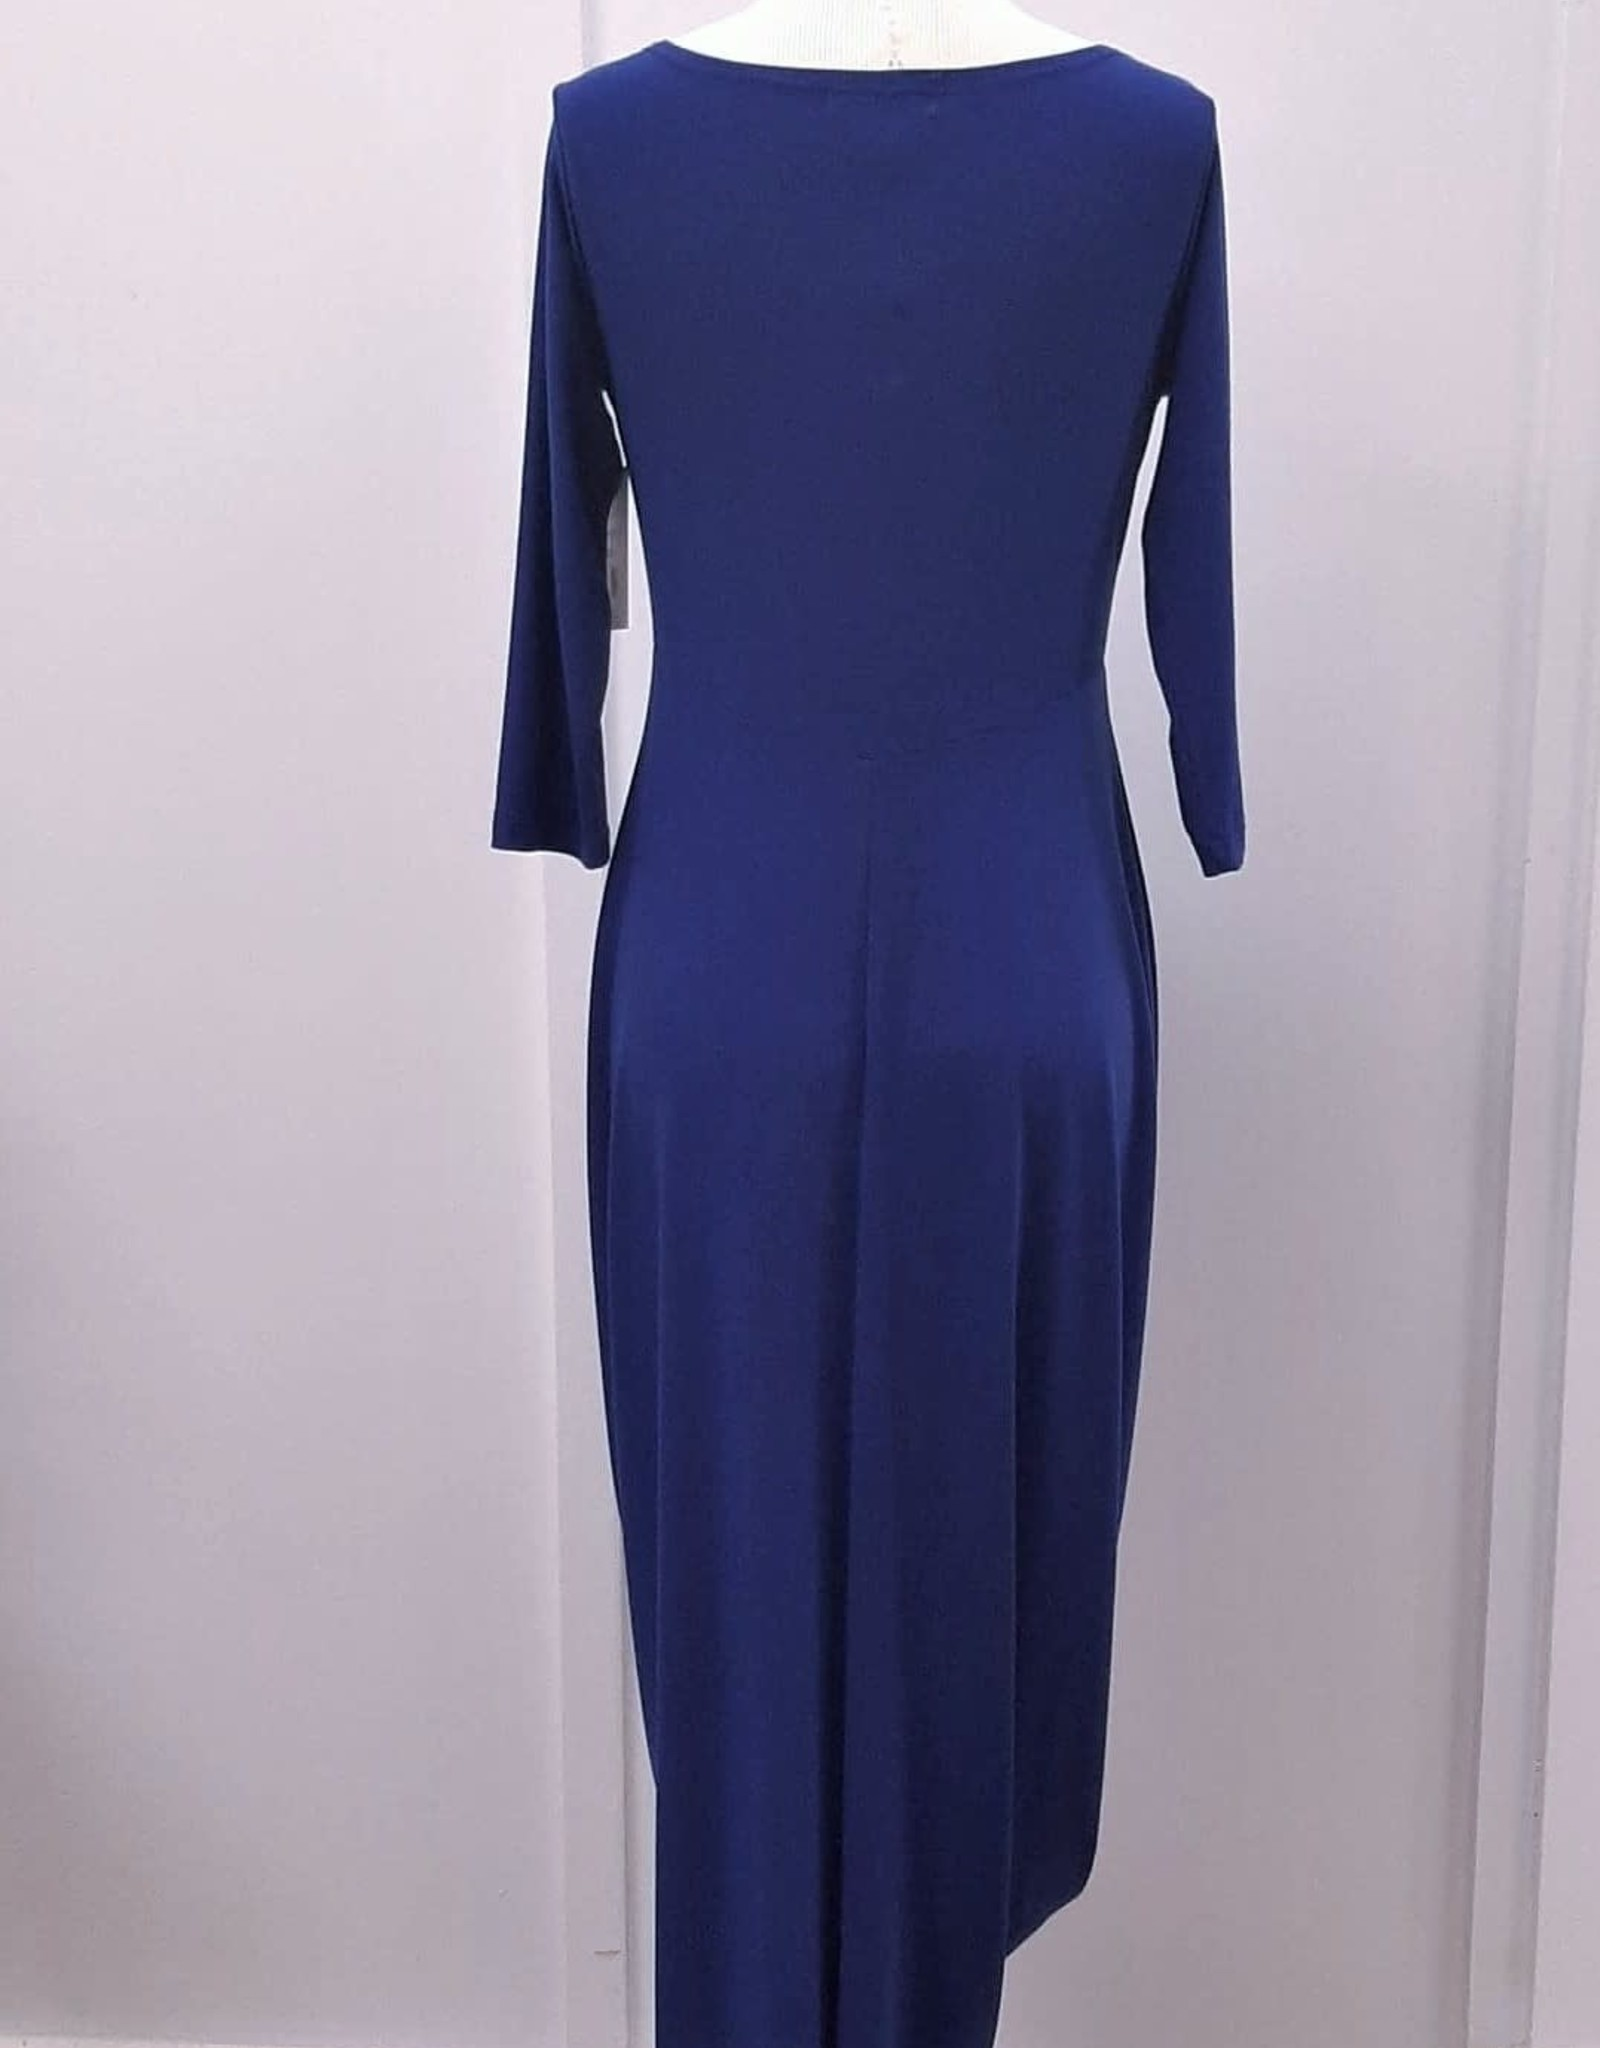 Sympli Swag Dress - Size 6 (Consignment)